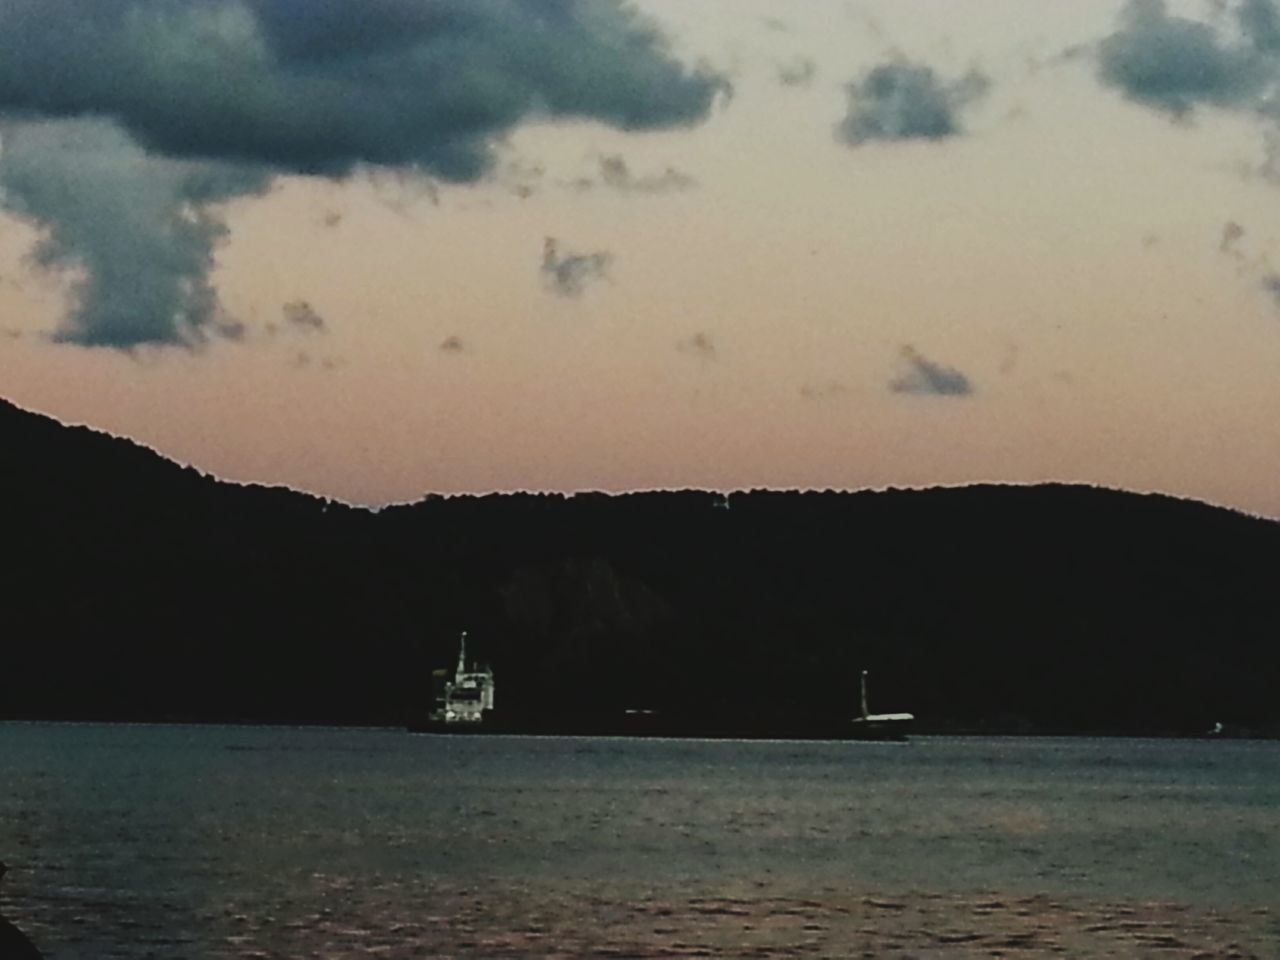 Water Waterfront Mountain Nautical Vessel Sea Tranquil Scene Tranquility Scenics Transportation Boat Sky Cloud - Sky Beauty In Nature Nature Tourism Non-urban Scene Mountain Range Ship Calm Sailing